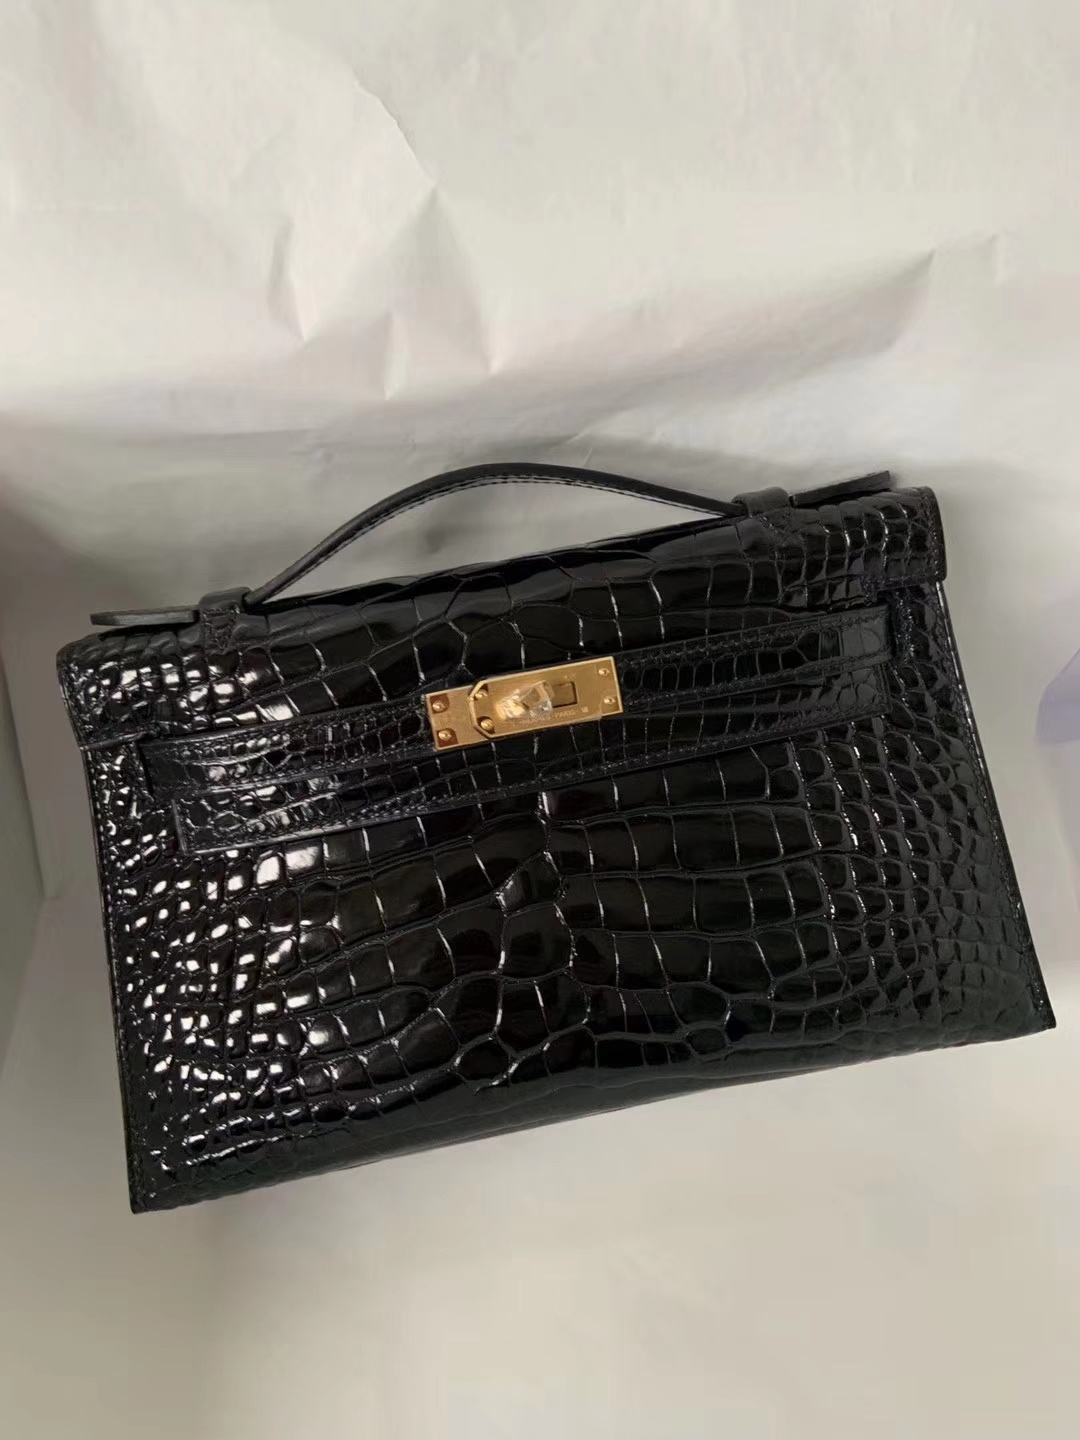 Stock Hermes Shiny Crocodile Minikelly Pochette 22CM CK89 Noir Gold Hardware